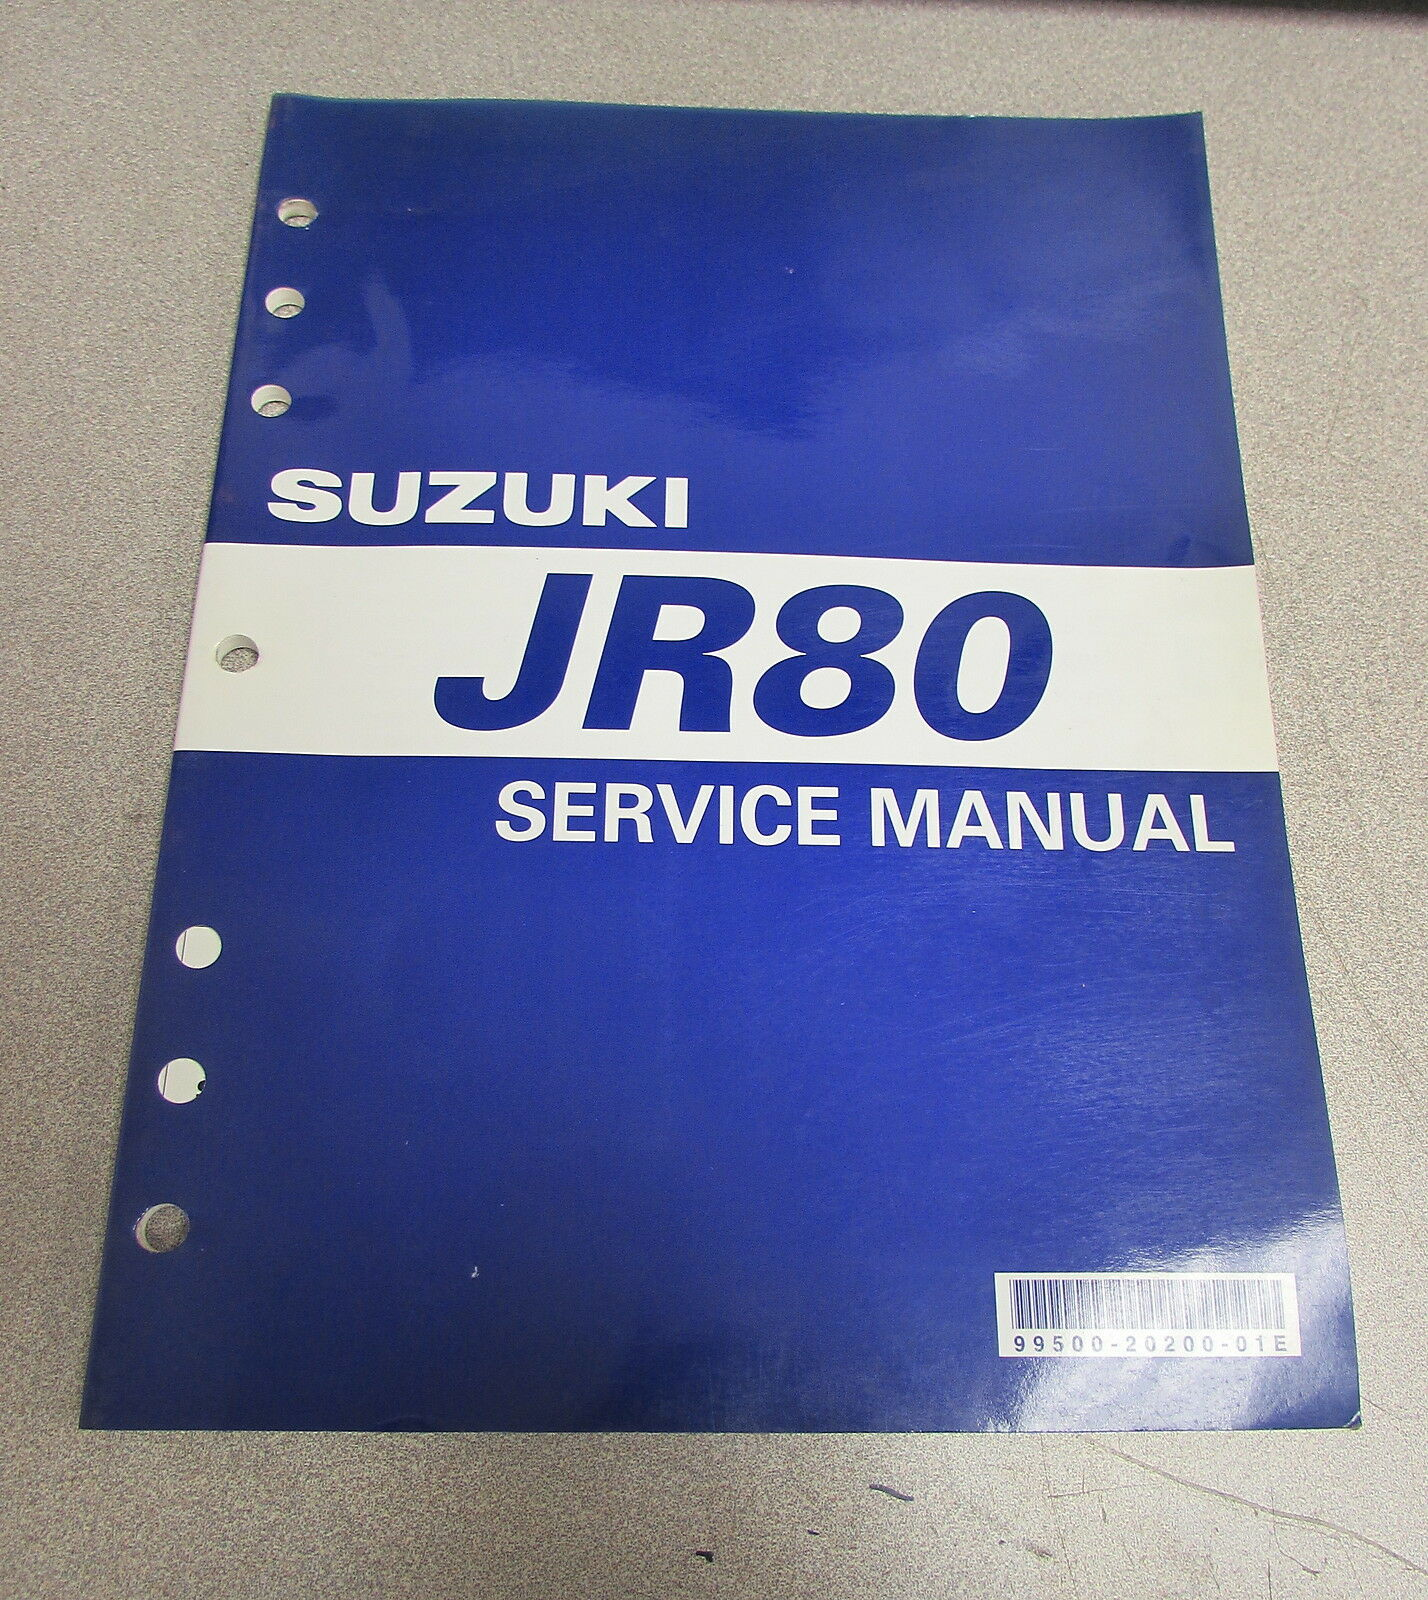 Suzuki eiger manual ebook array suzuki eiger manual ebook rh suzuki eiger manual ebook fullybelly de fandeluxe Image collections